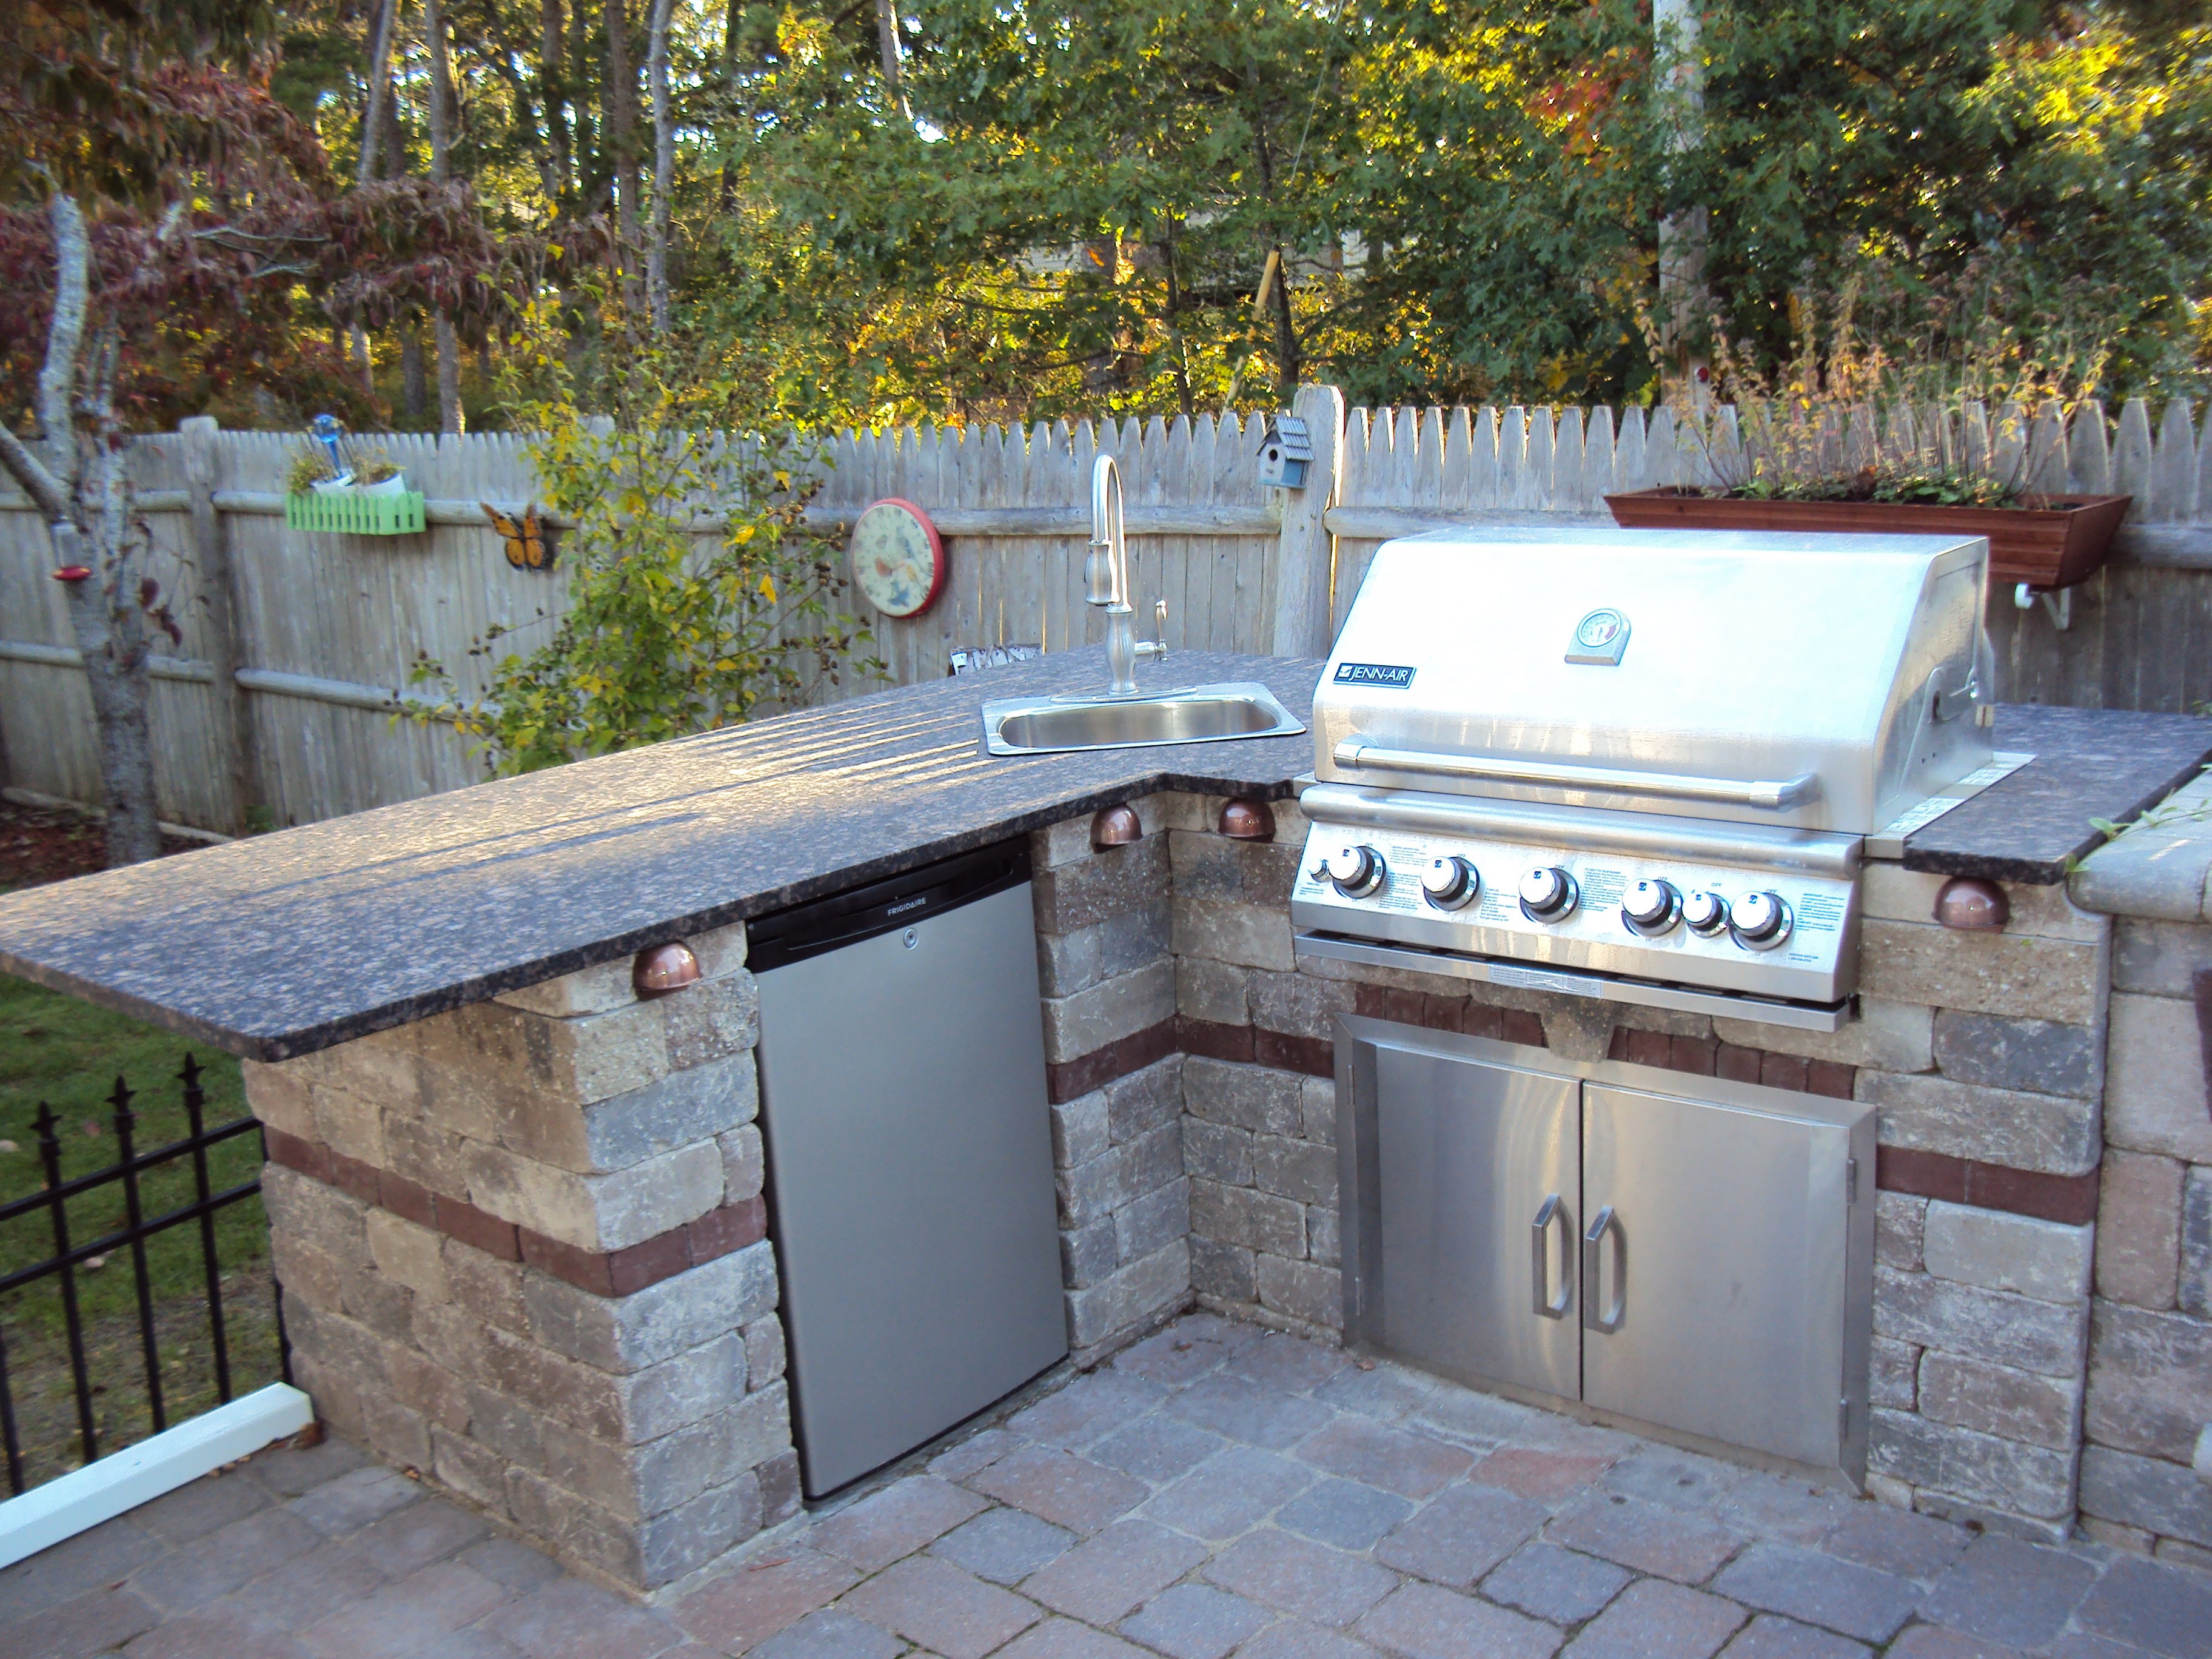 Earthworks Cape Cod - Outdoor Kitchens | Hardscape Service & Stone on covered terrace ideas, covered pergola ideas, covered hot tub ideas, covered outdoor fireplaces, covered outdoor chairs, covered patio designs, covered outdoor living rooms, covered deck with kitchen, covered backyard ideas, covered grill ideas, covered walkway ideas, rustic outdoor ideas, covered bbq ideas, covered balcony ideas, covered outdoor kitchens and patios, covered privacy fence ideas, cool outdoor bar ideas, covered outdoor cooking, covered fireplace ideas, covered outdoor architecture,